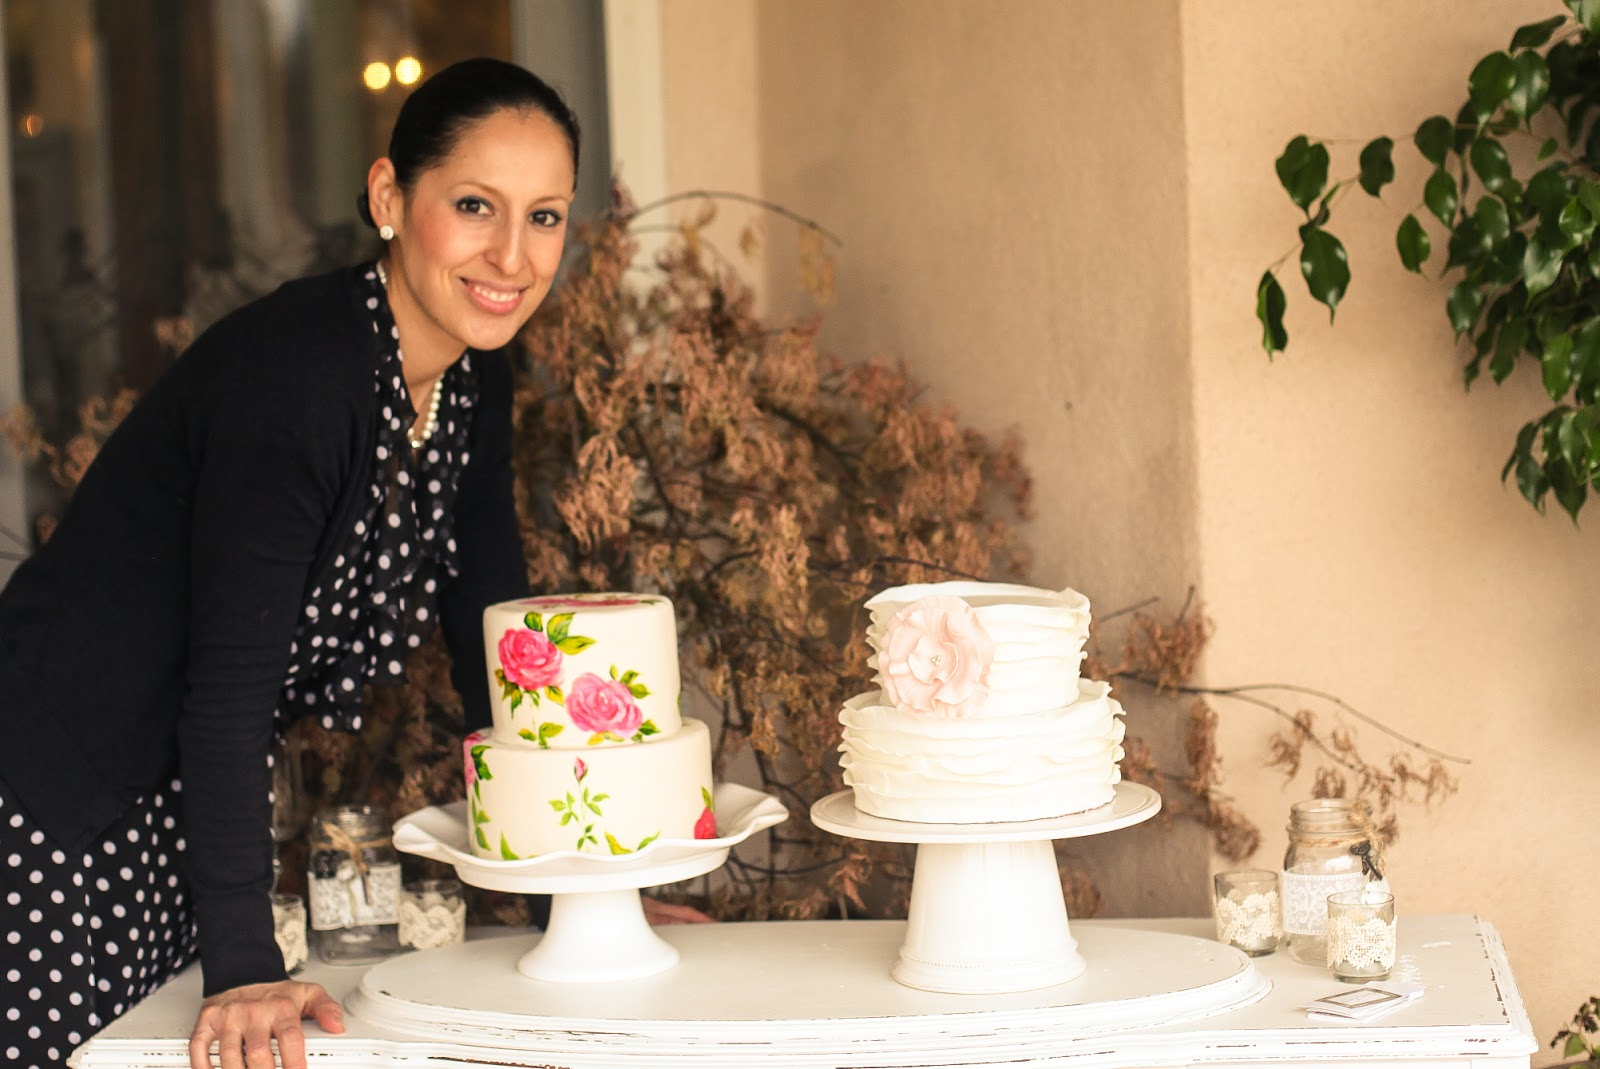 Legalities Of Running A Cake Business From Home